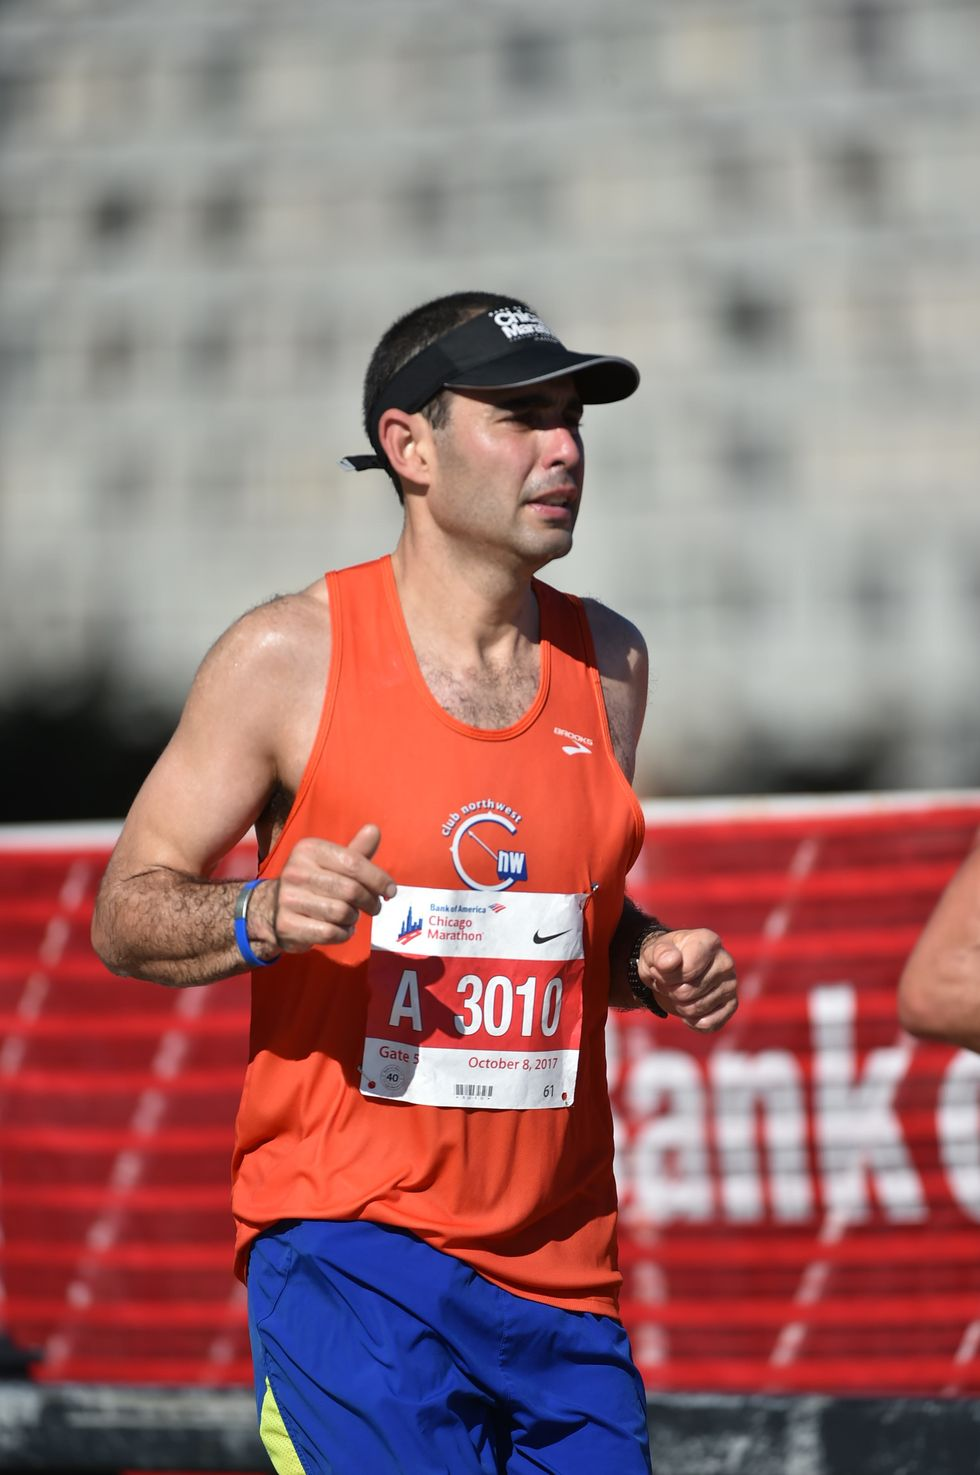 How This Special Olympics Athlete Races Past Expectations